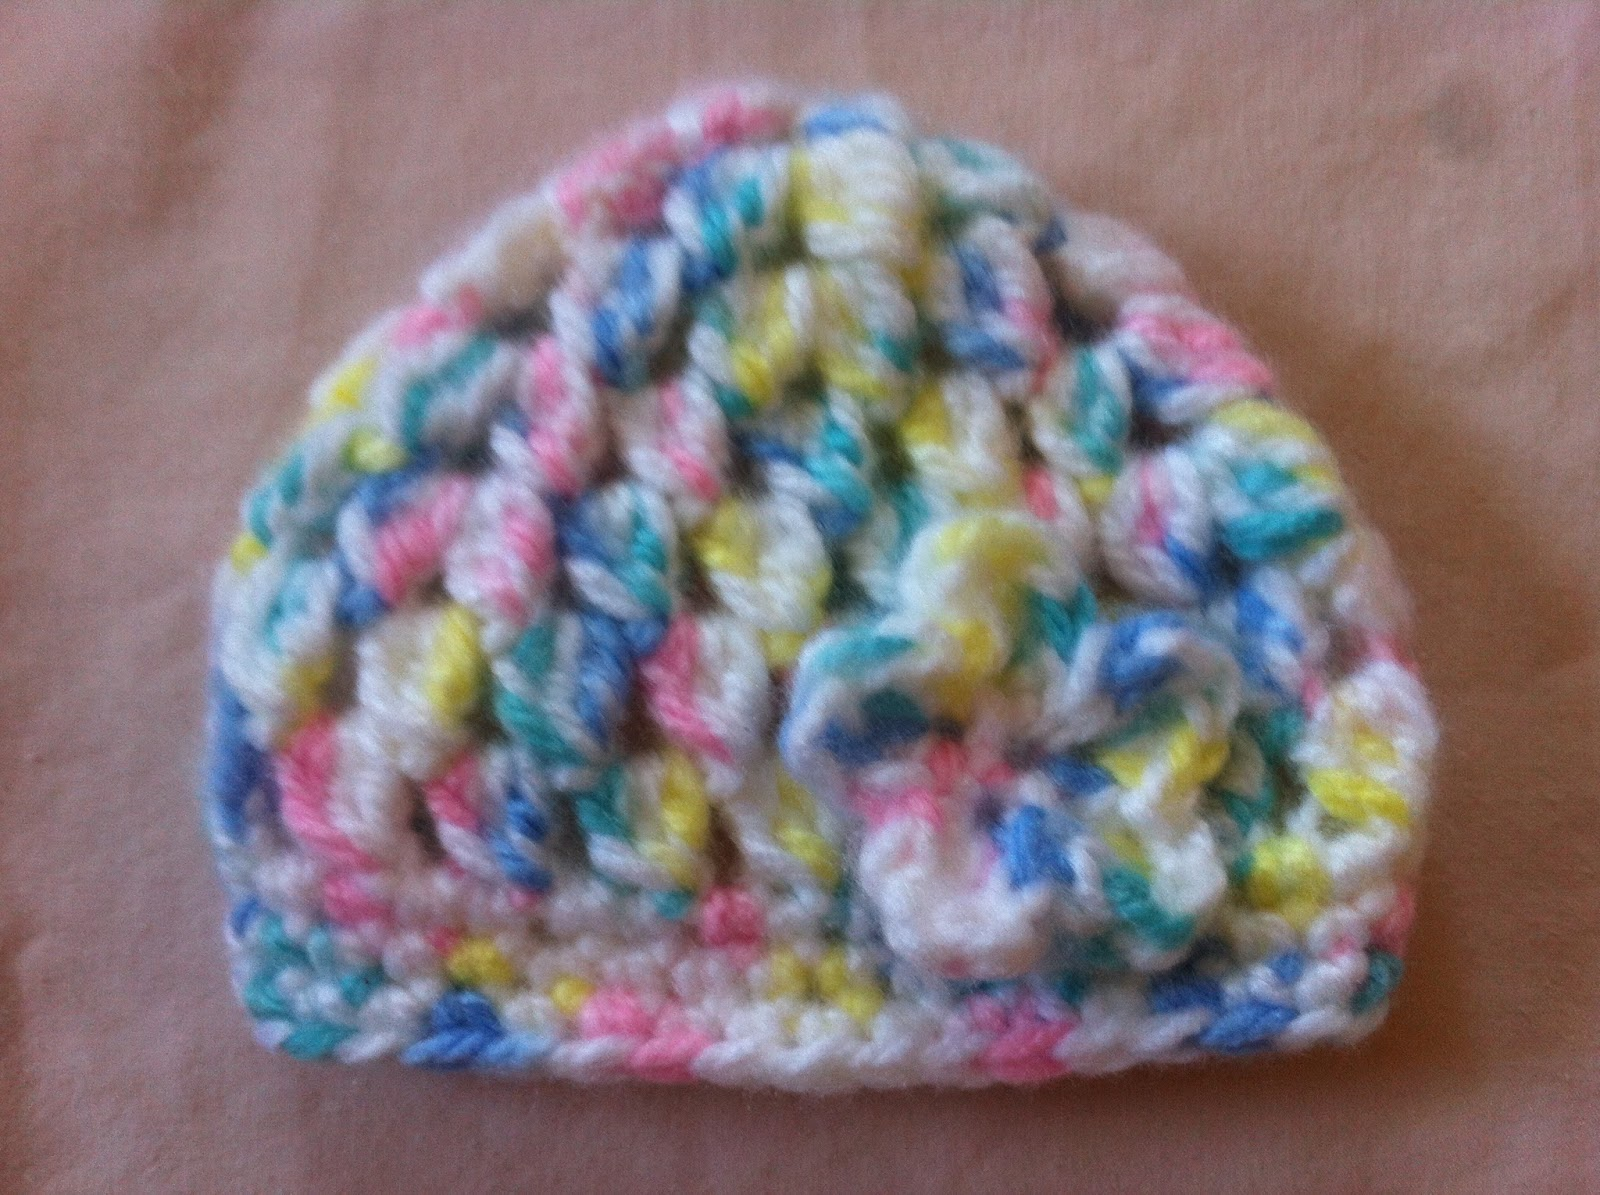 Crocheting Clusters : Crochet Cluster Stitch Preemie Hat - Free Pattern Not My Nanas ...